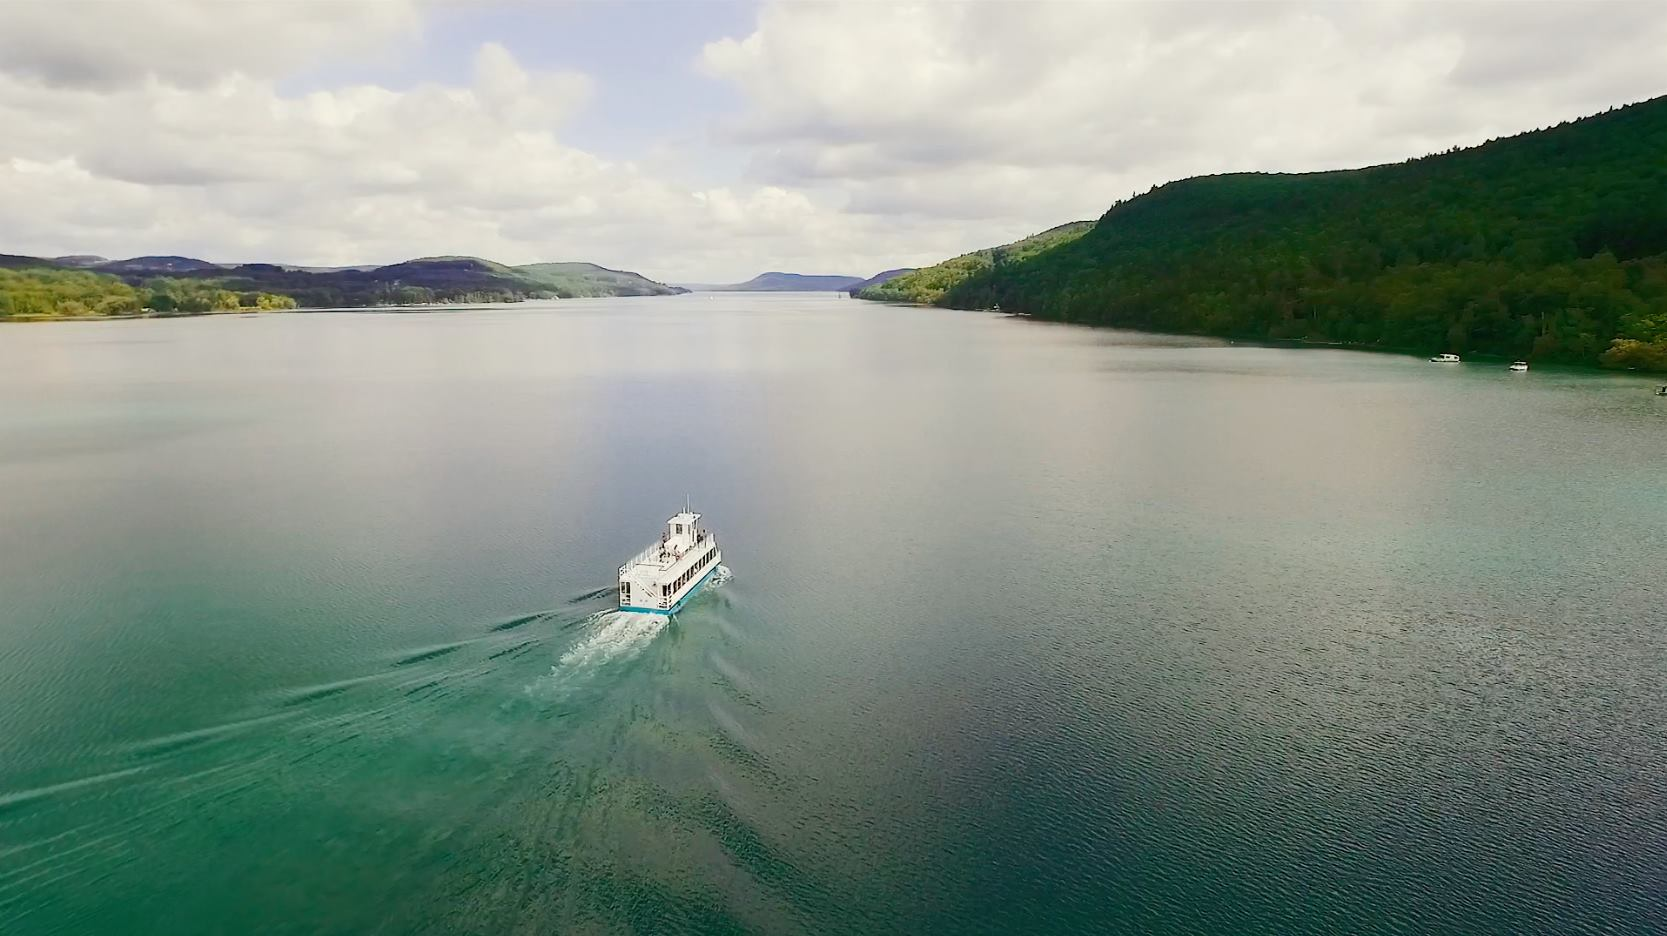 This Is Cooperstown Wins New York State Tourism Excellence Award